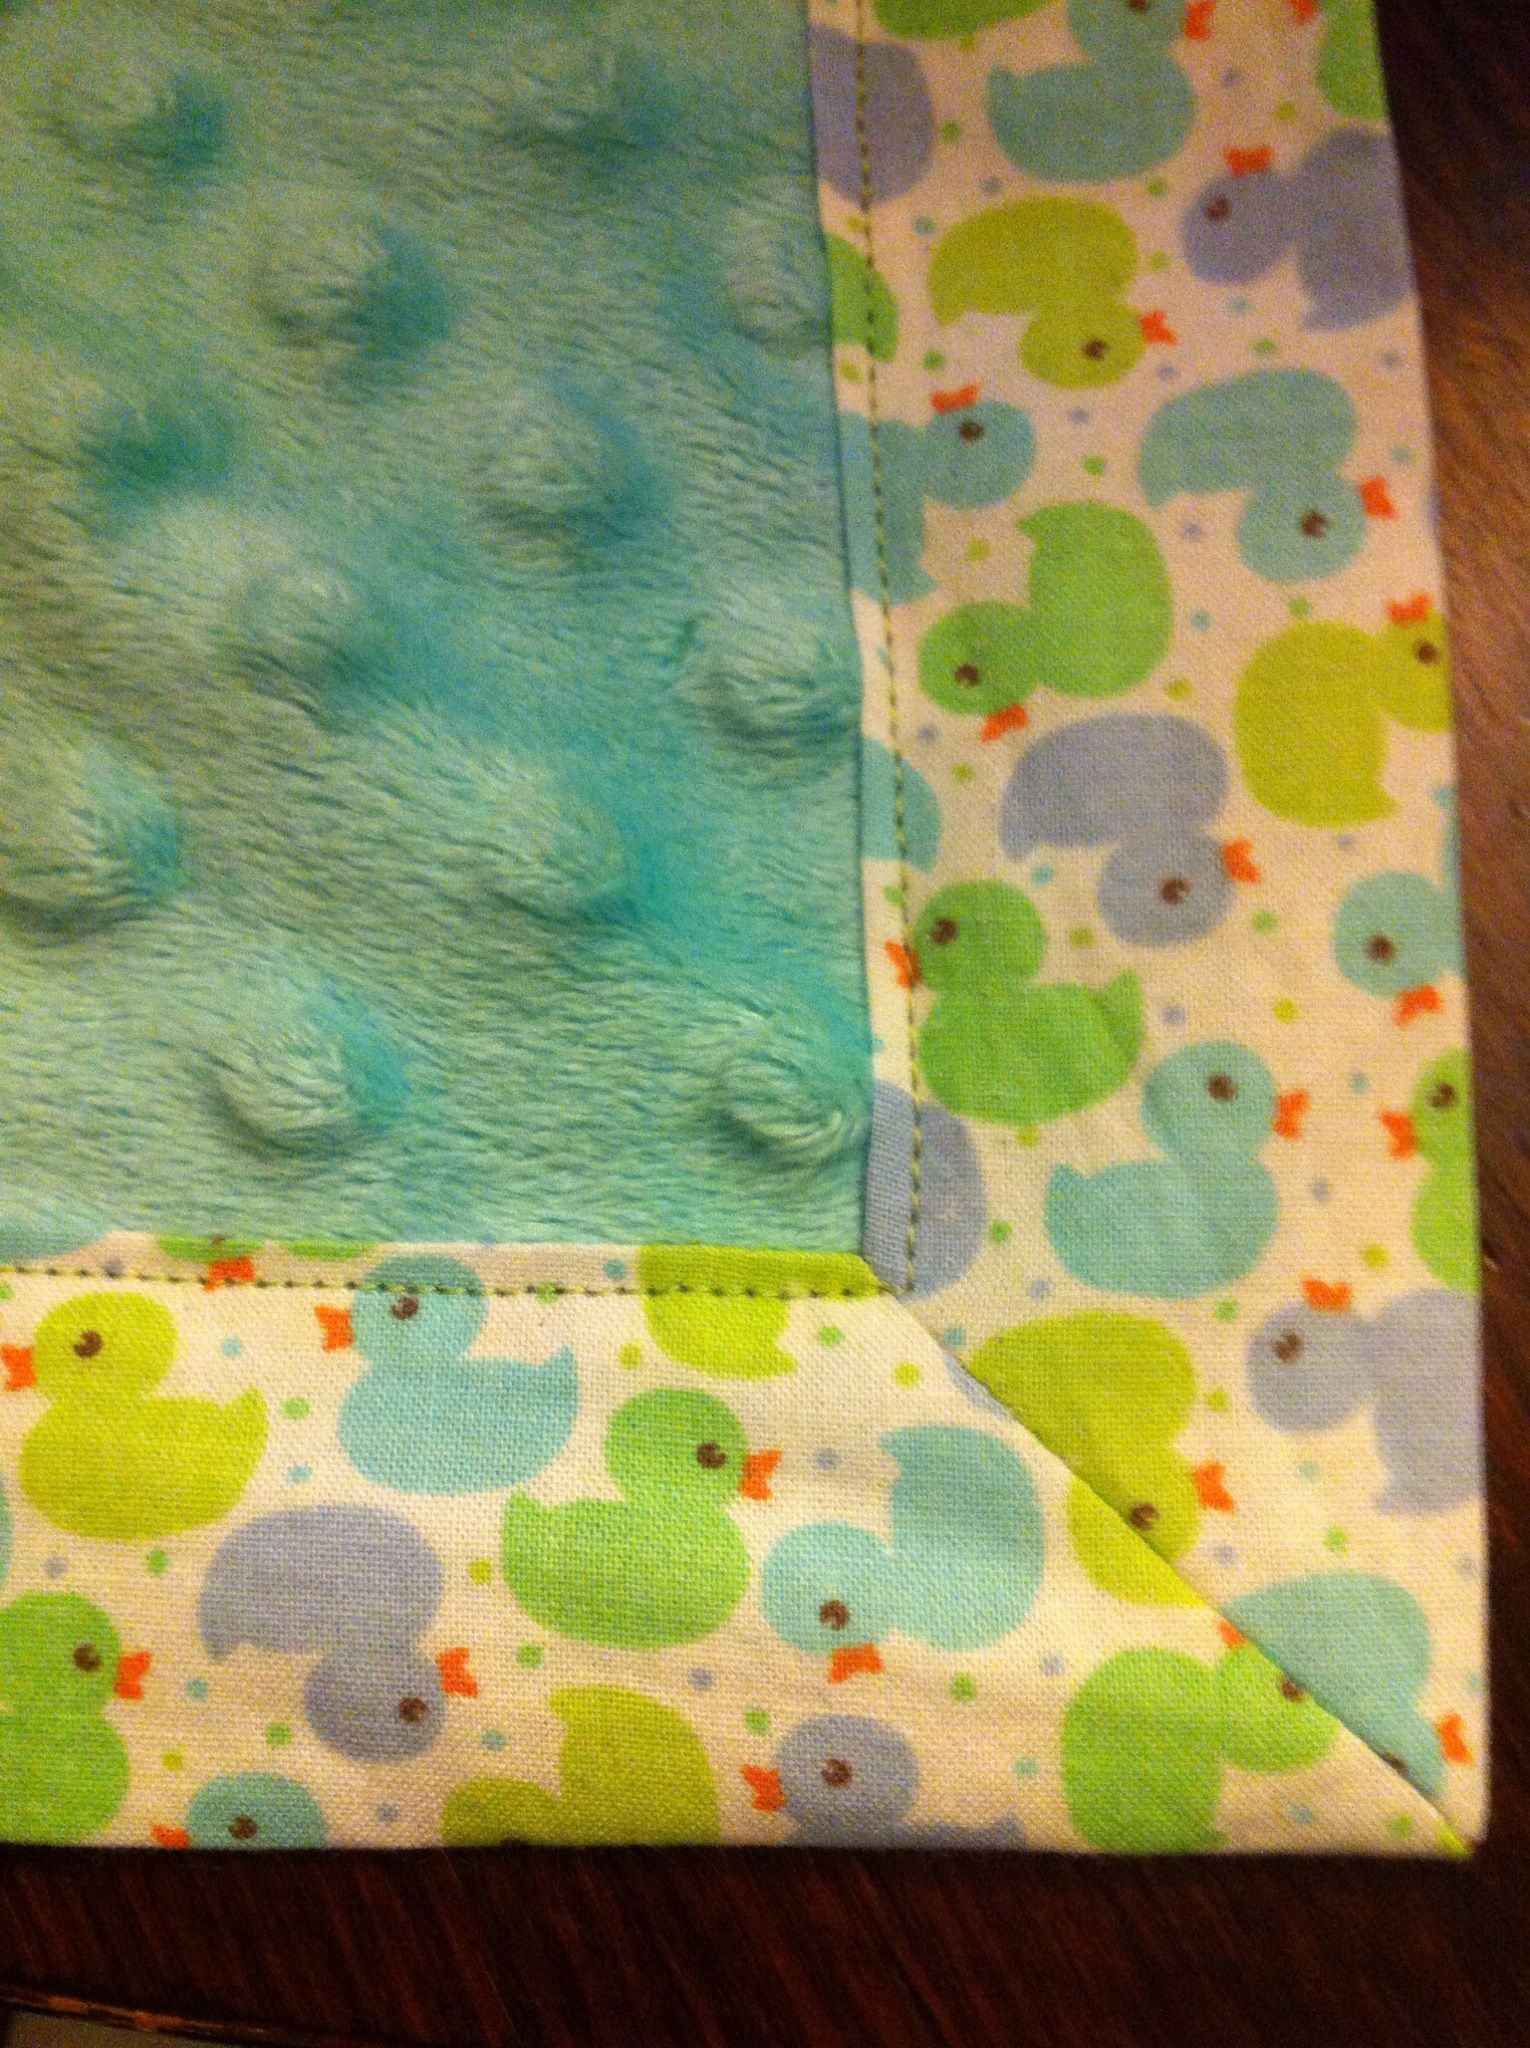 Babydecke Kaufen How To Sew A Nice Corner On A Blanket